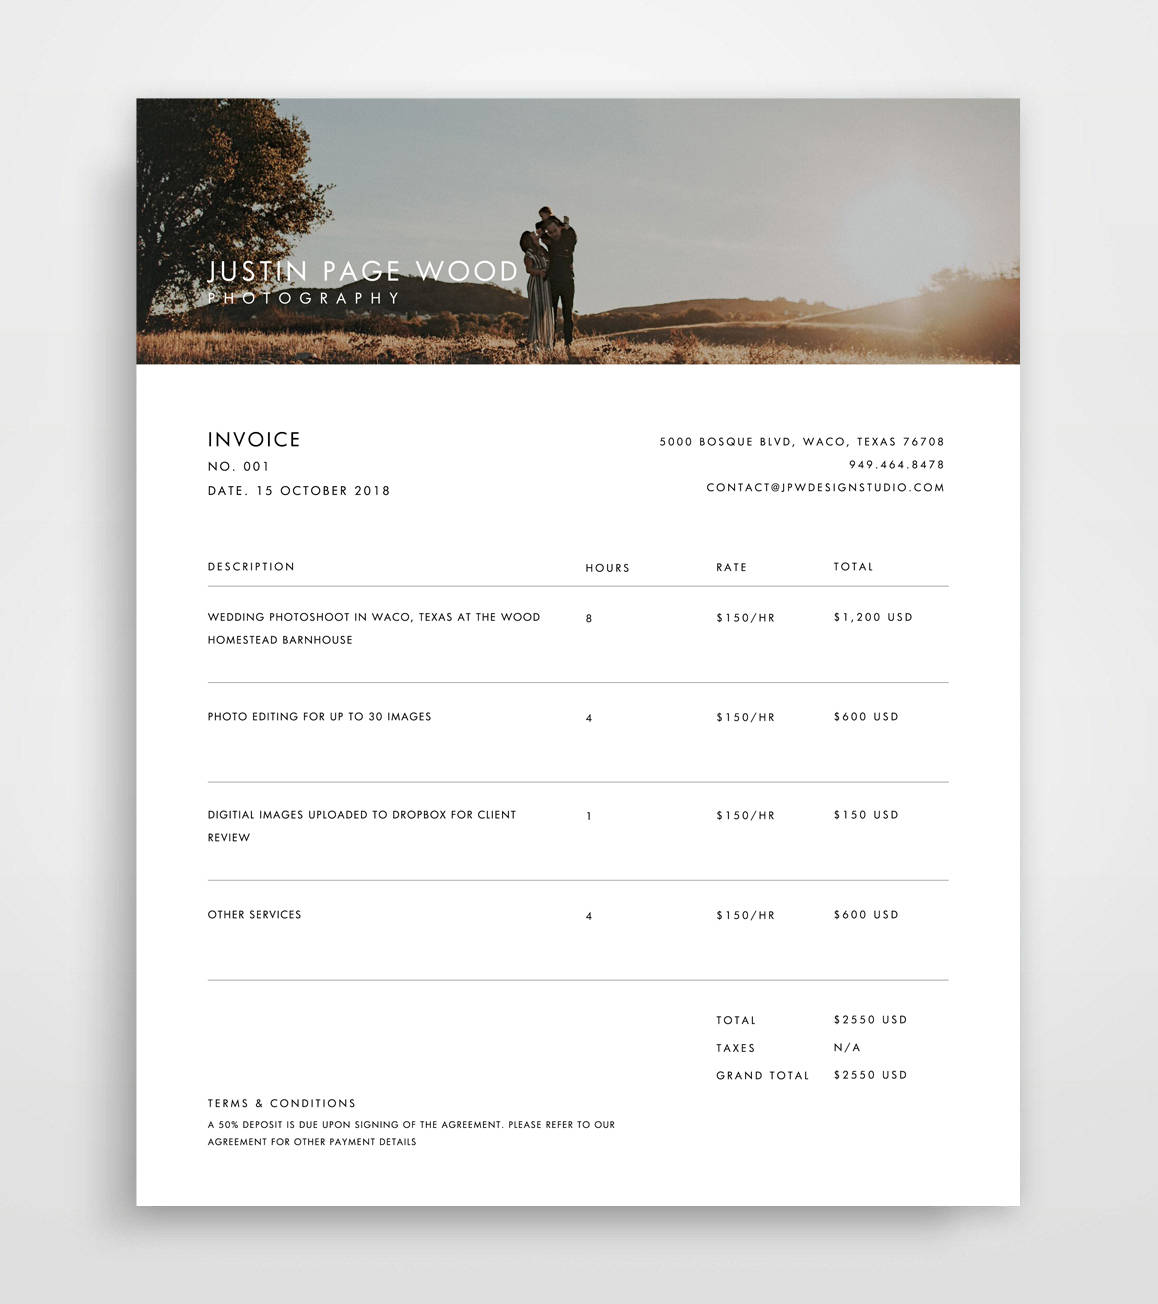 Photography Invoice Sample  CityEsporaCo